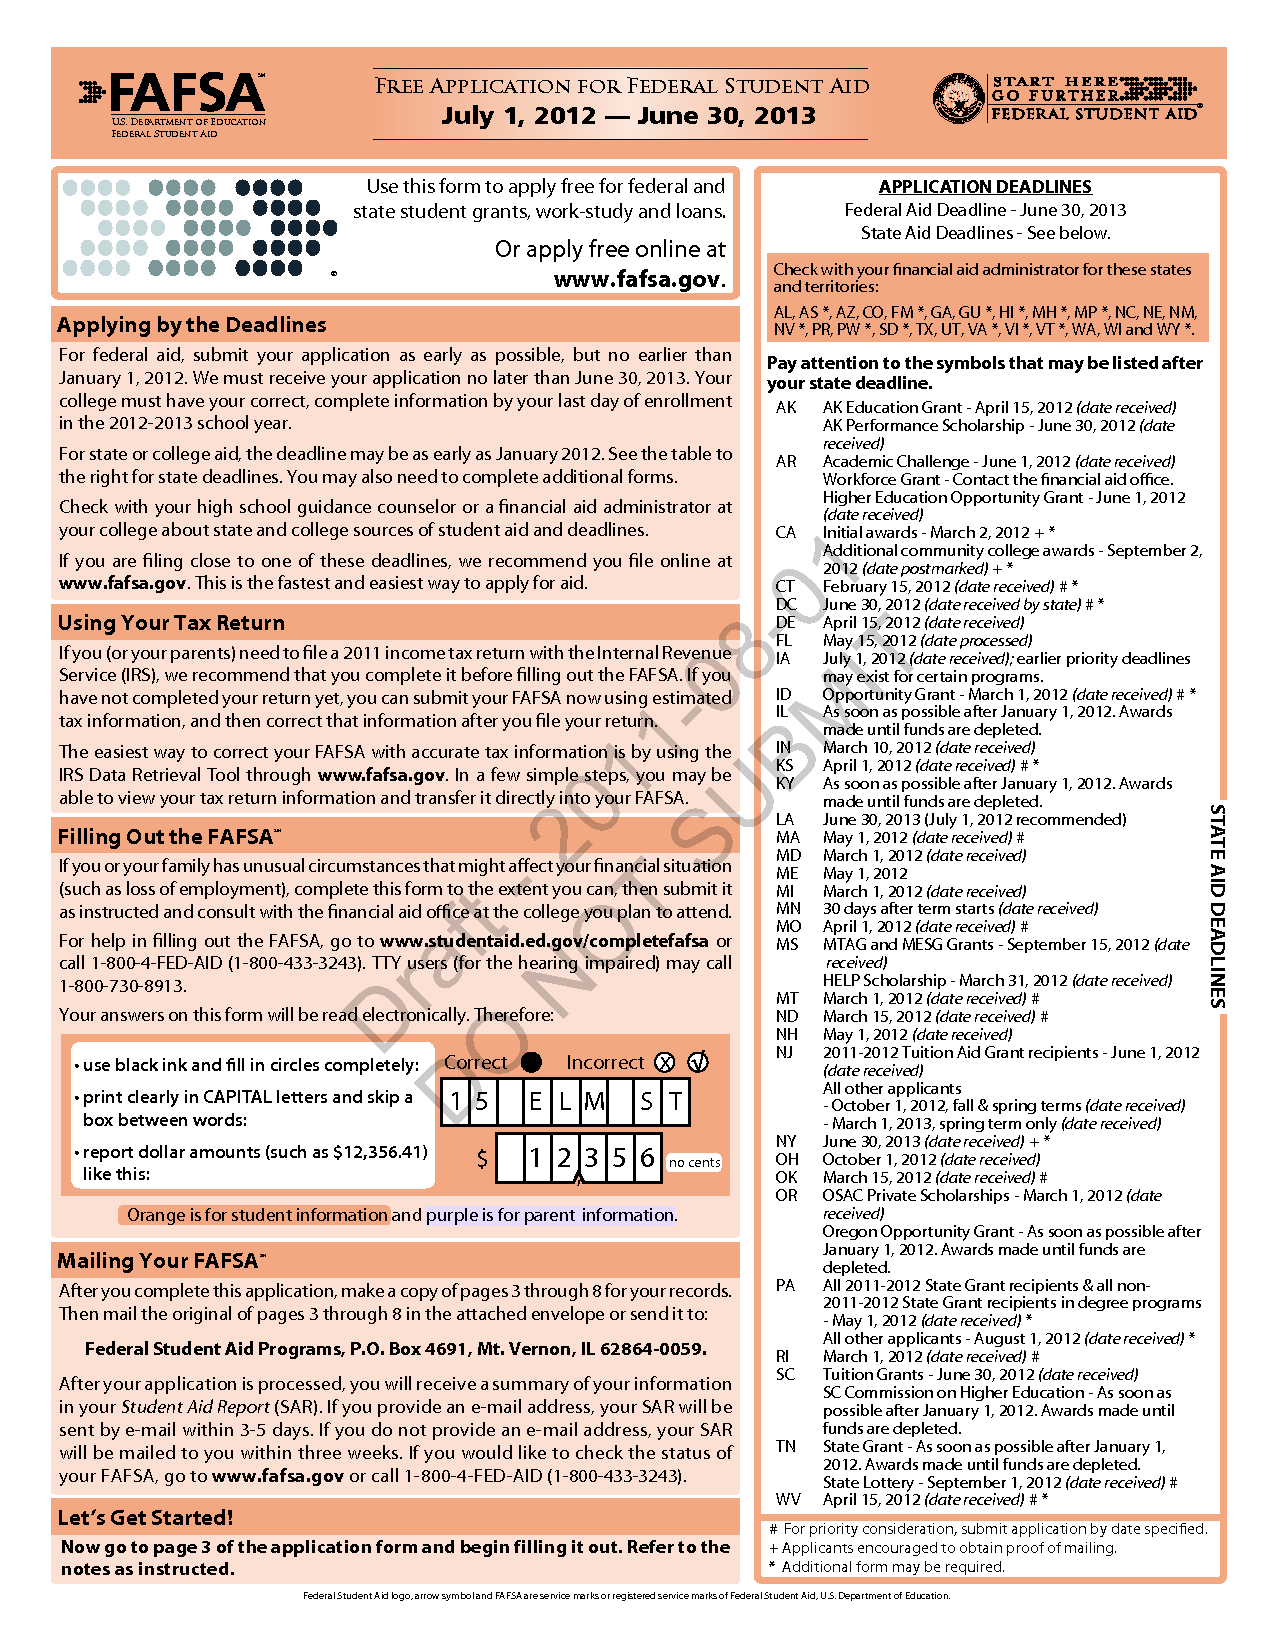 Printables Printable Fafsa Worksheet printable fafsa worksheet bloggakuten 2016 intrepidpath